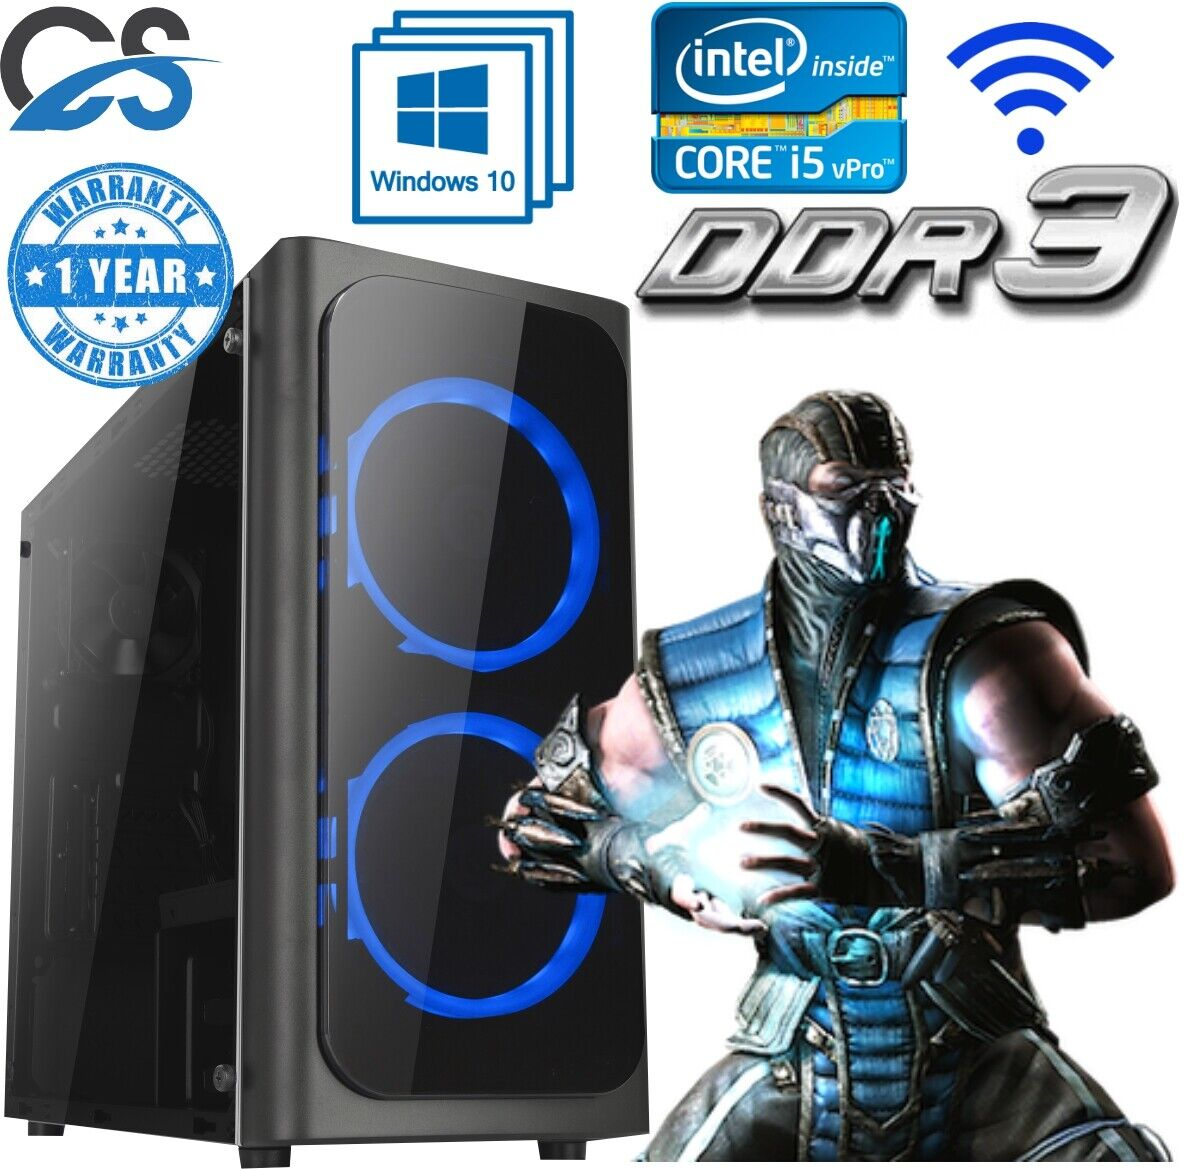 Computer Games - FAST Gaming Computer PC Intel Core i7 2600 8GB 120GB SSD Windows 10 2GB GT710